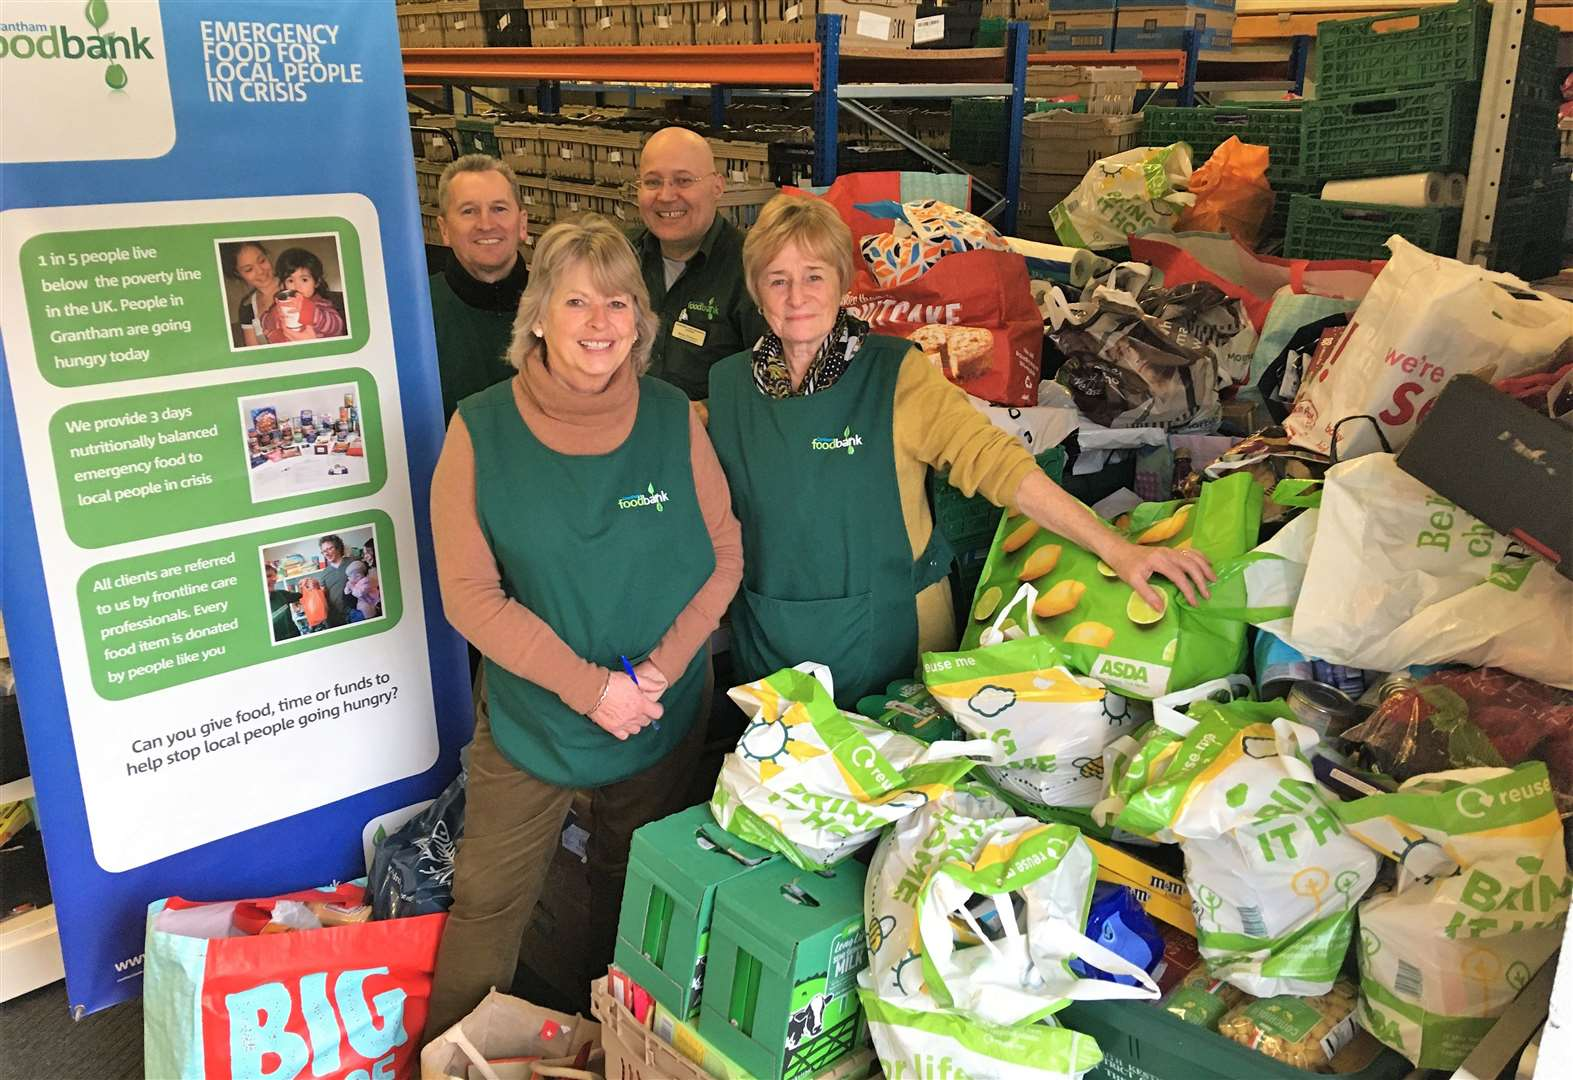 Bumper donation to foodbank by council